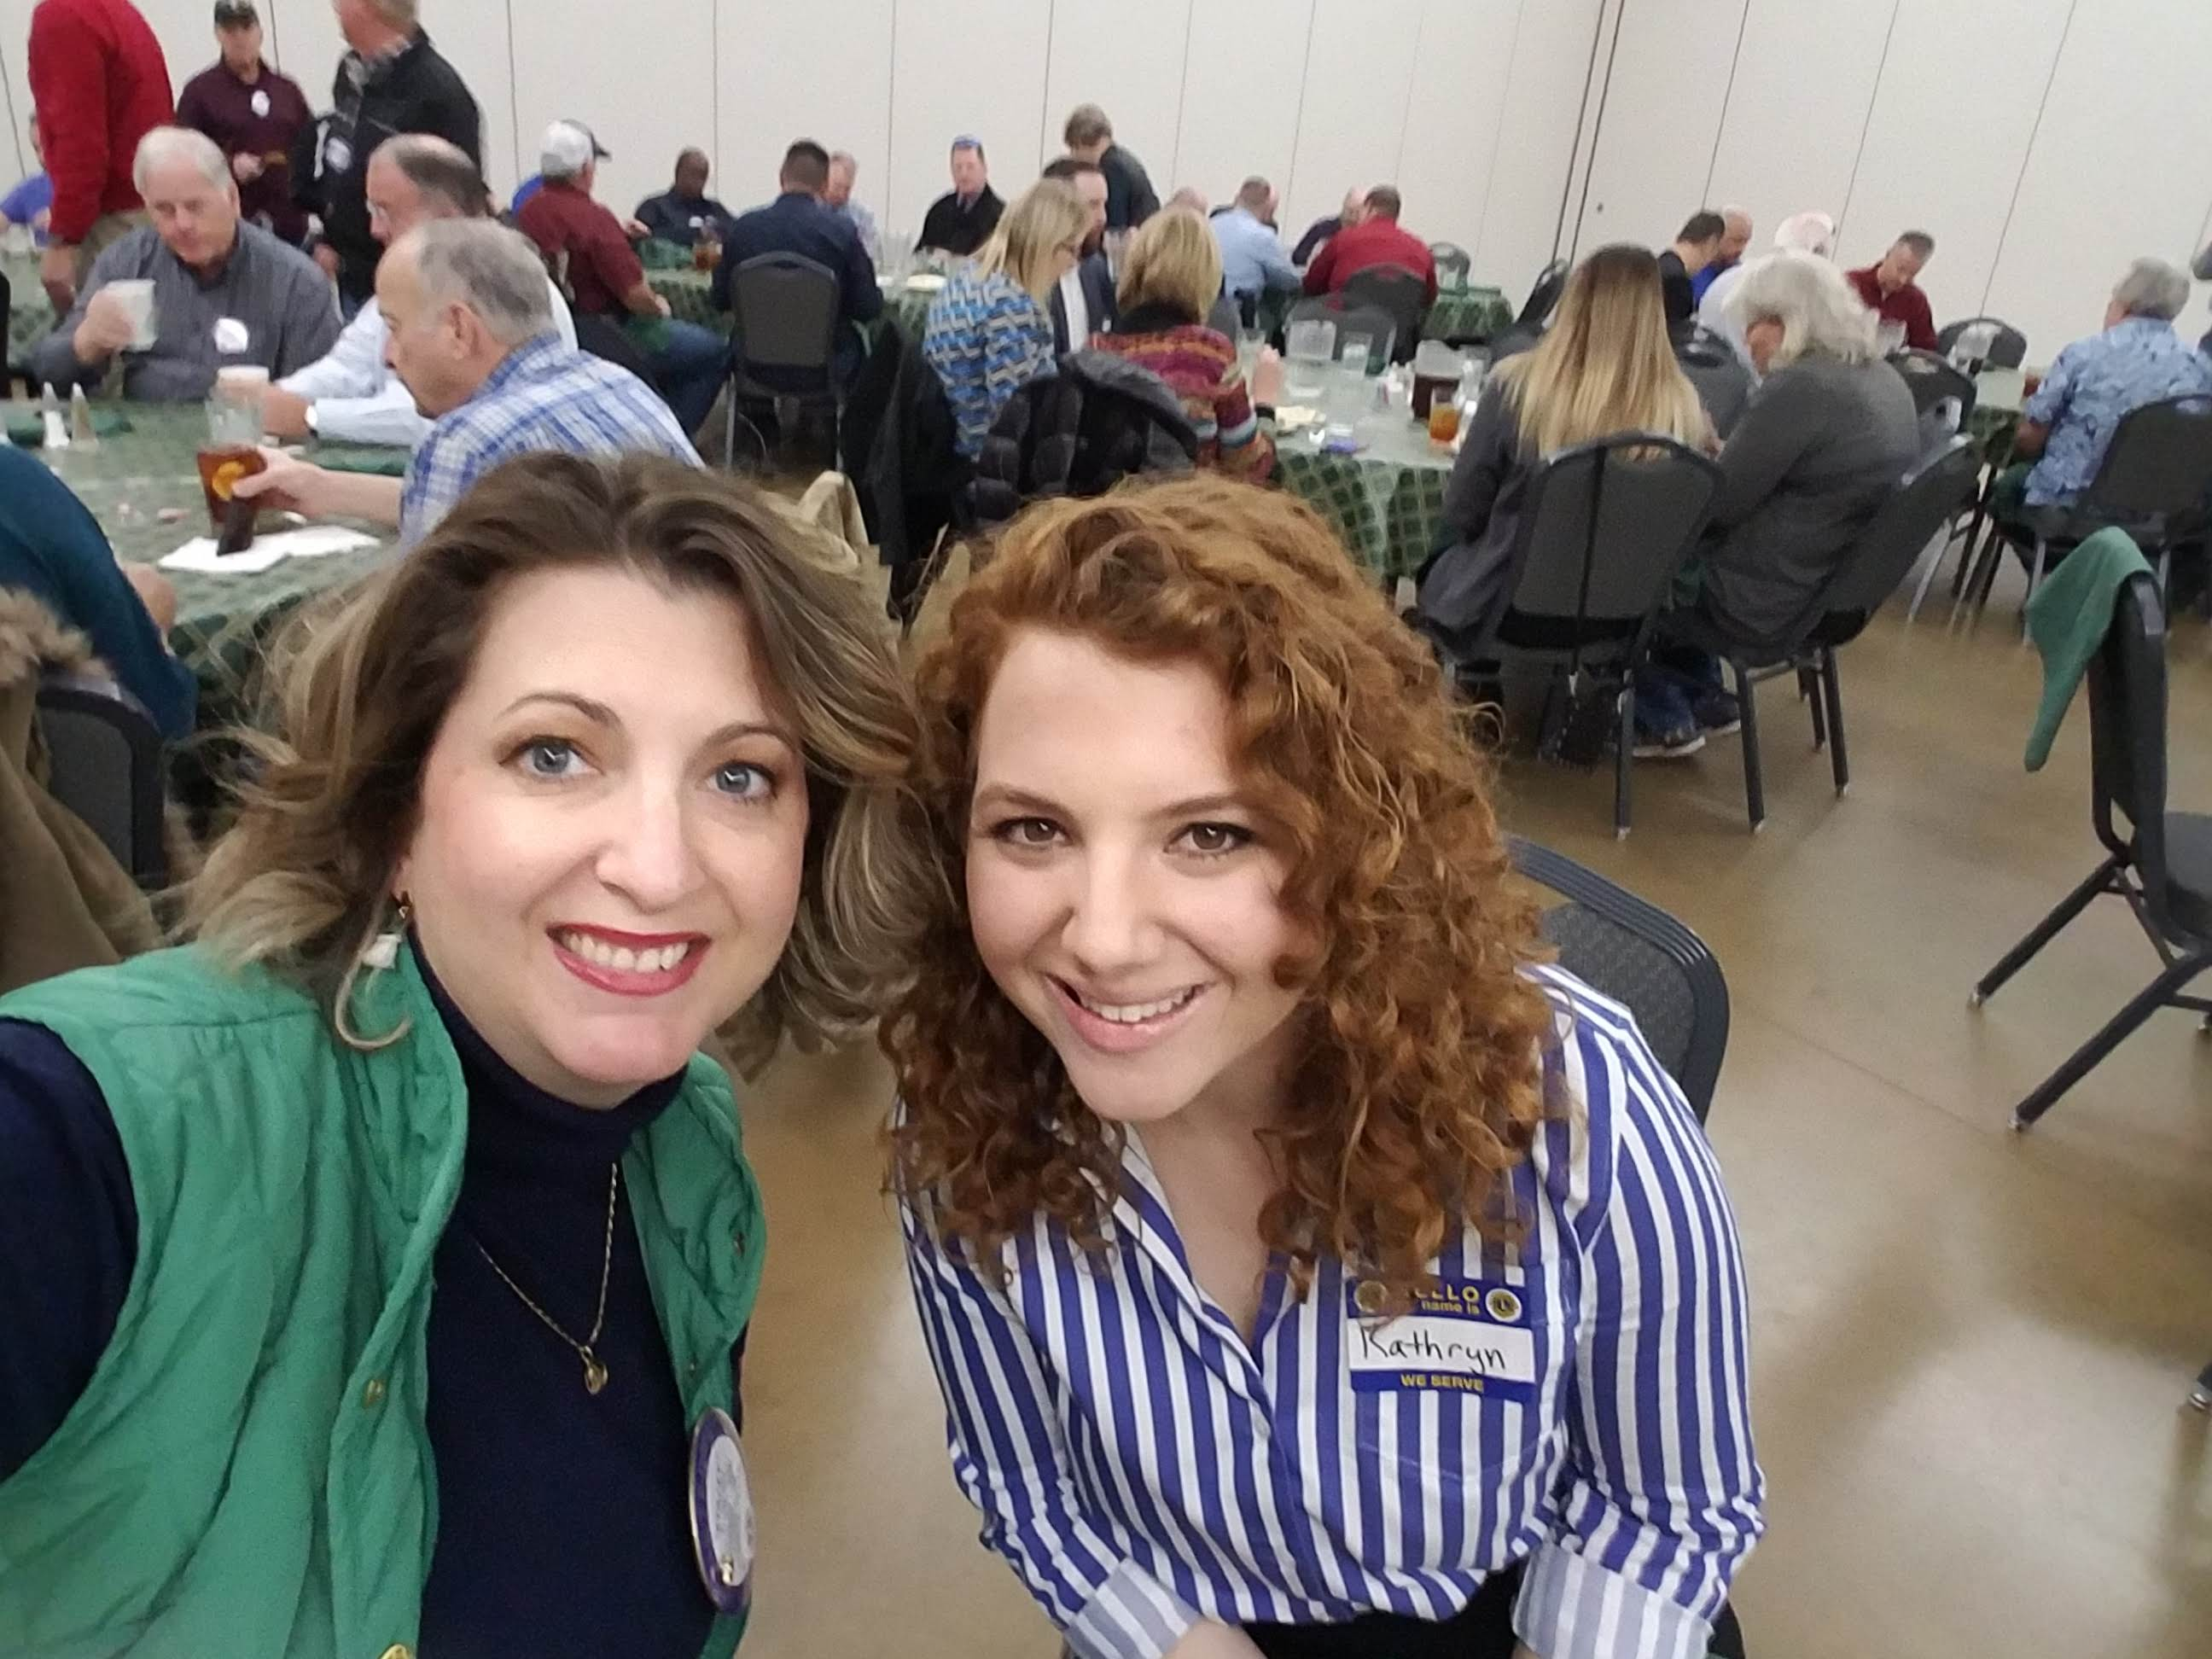 Kathryn and I at the Conroe Noon Lions Club Luncheon.